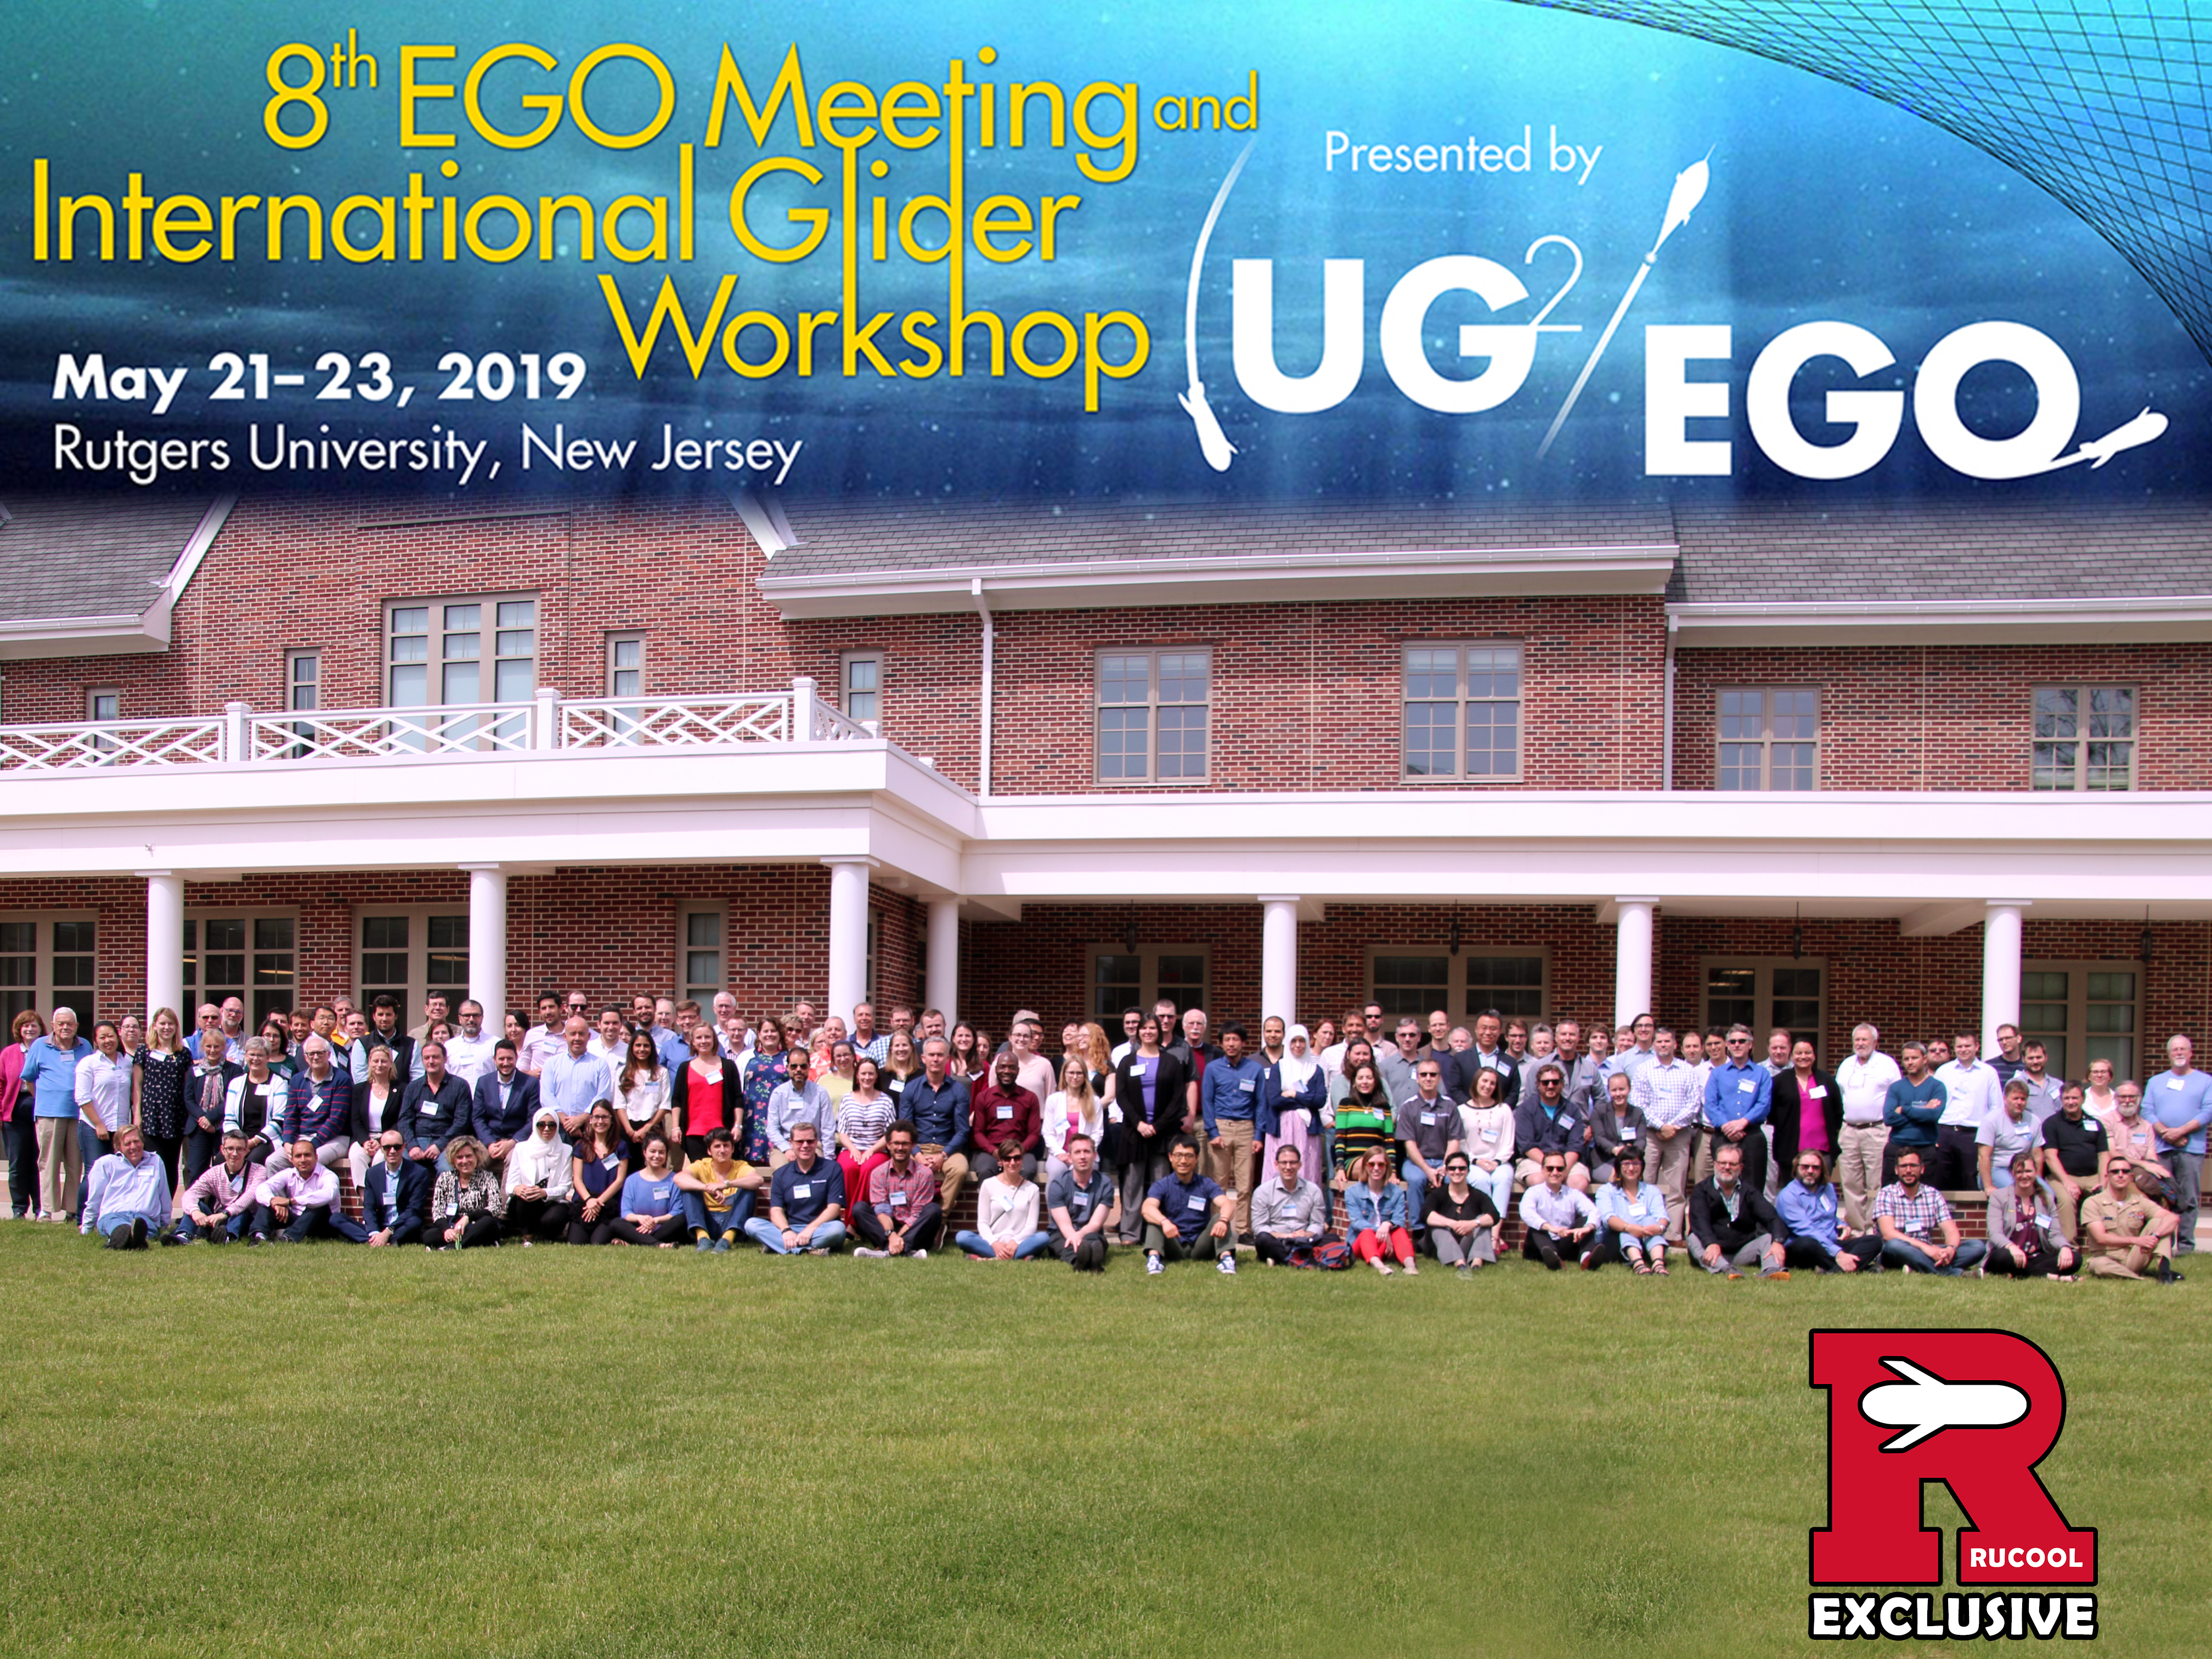 RUCOOL presents at 8th EGO Meeting and International Glider Workshop